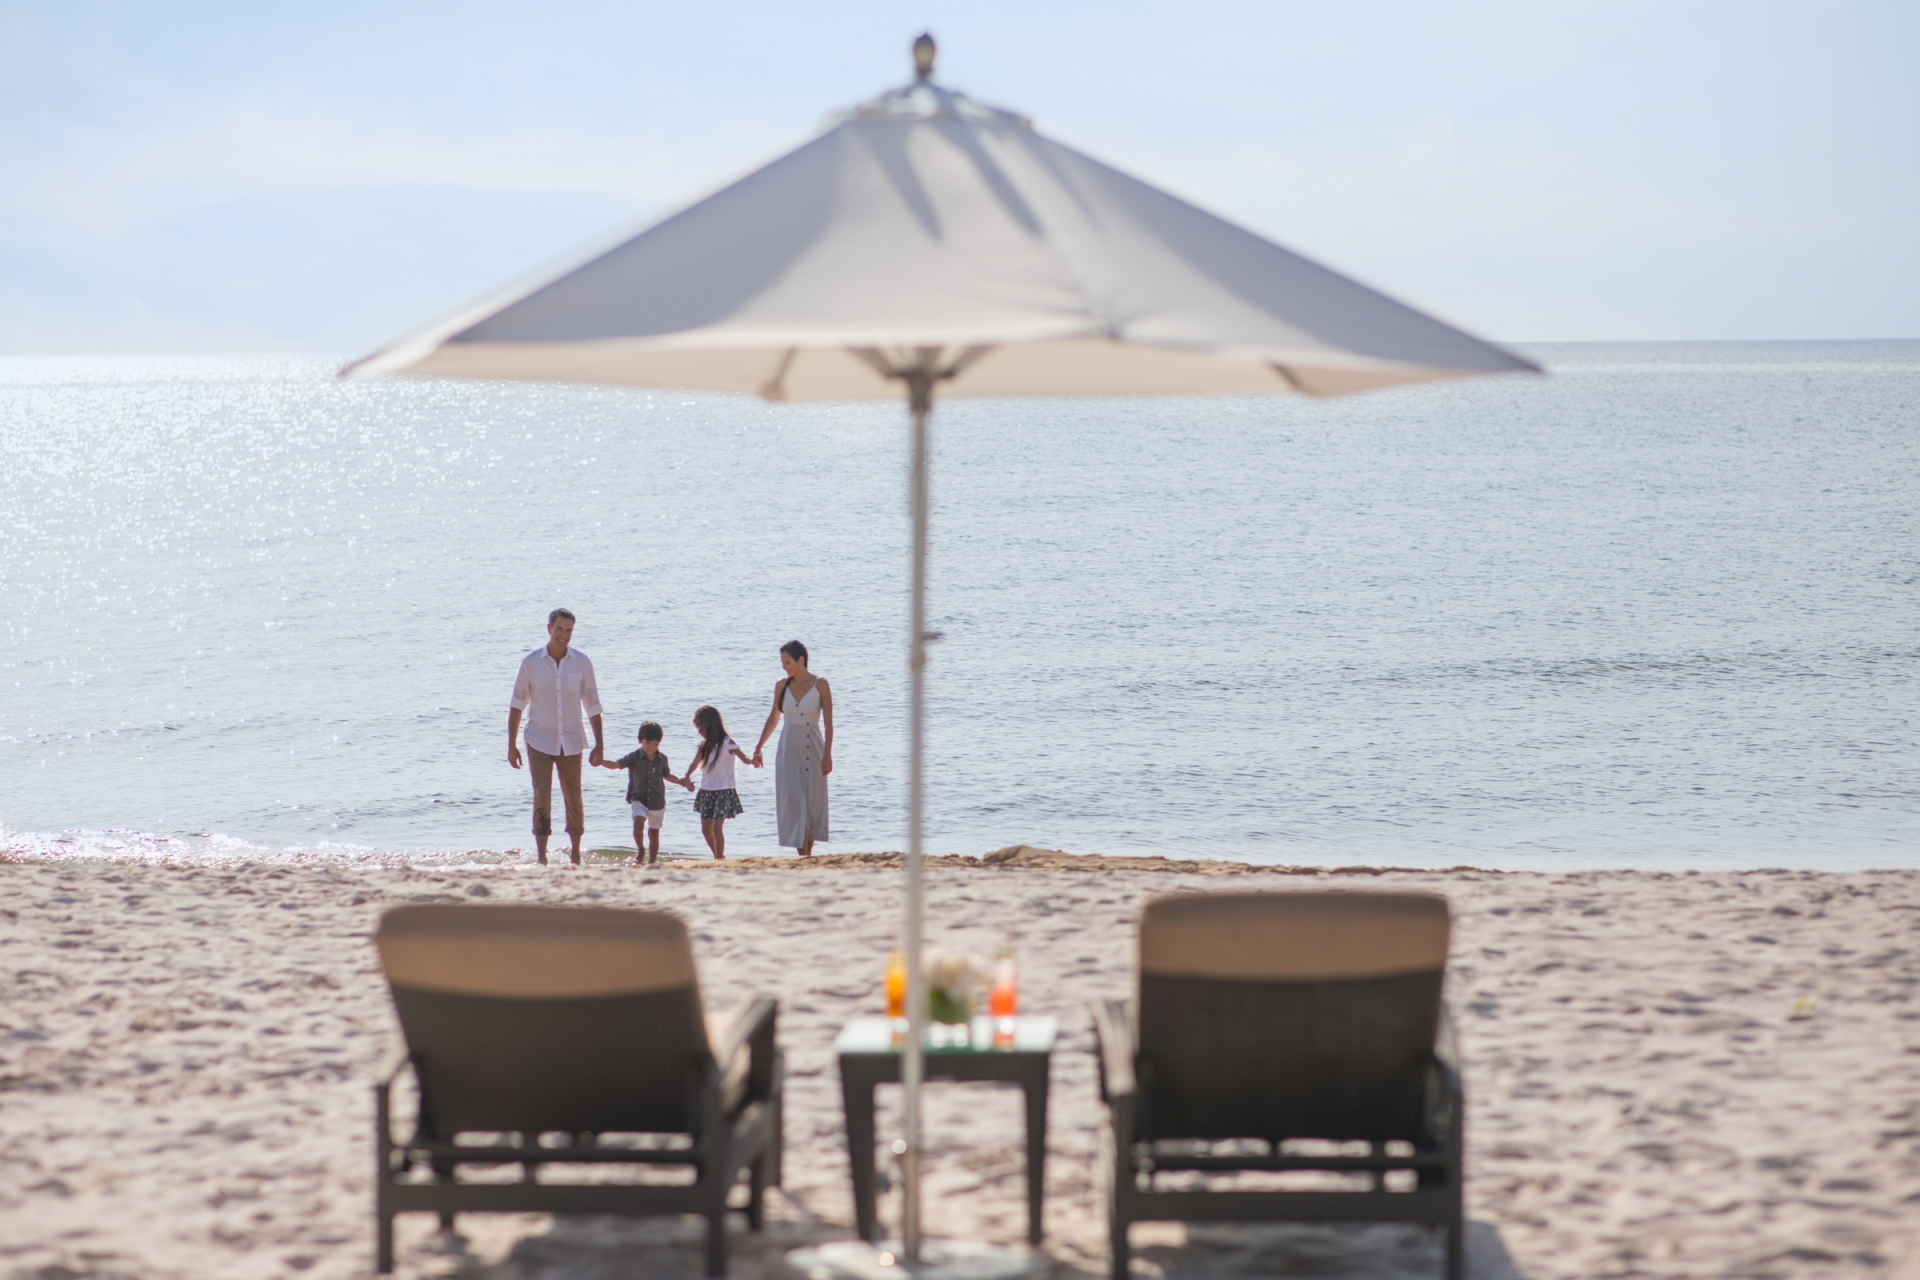 Dine, play, and stay on the Pearl Island Phu Quoc